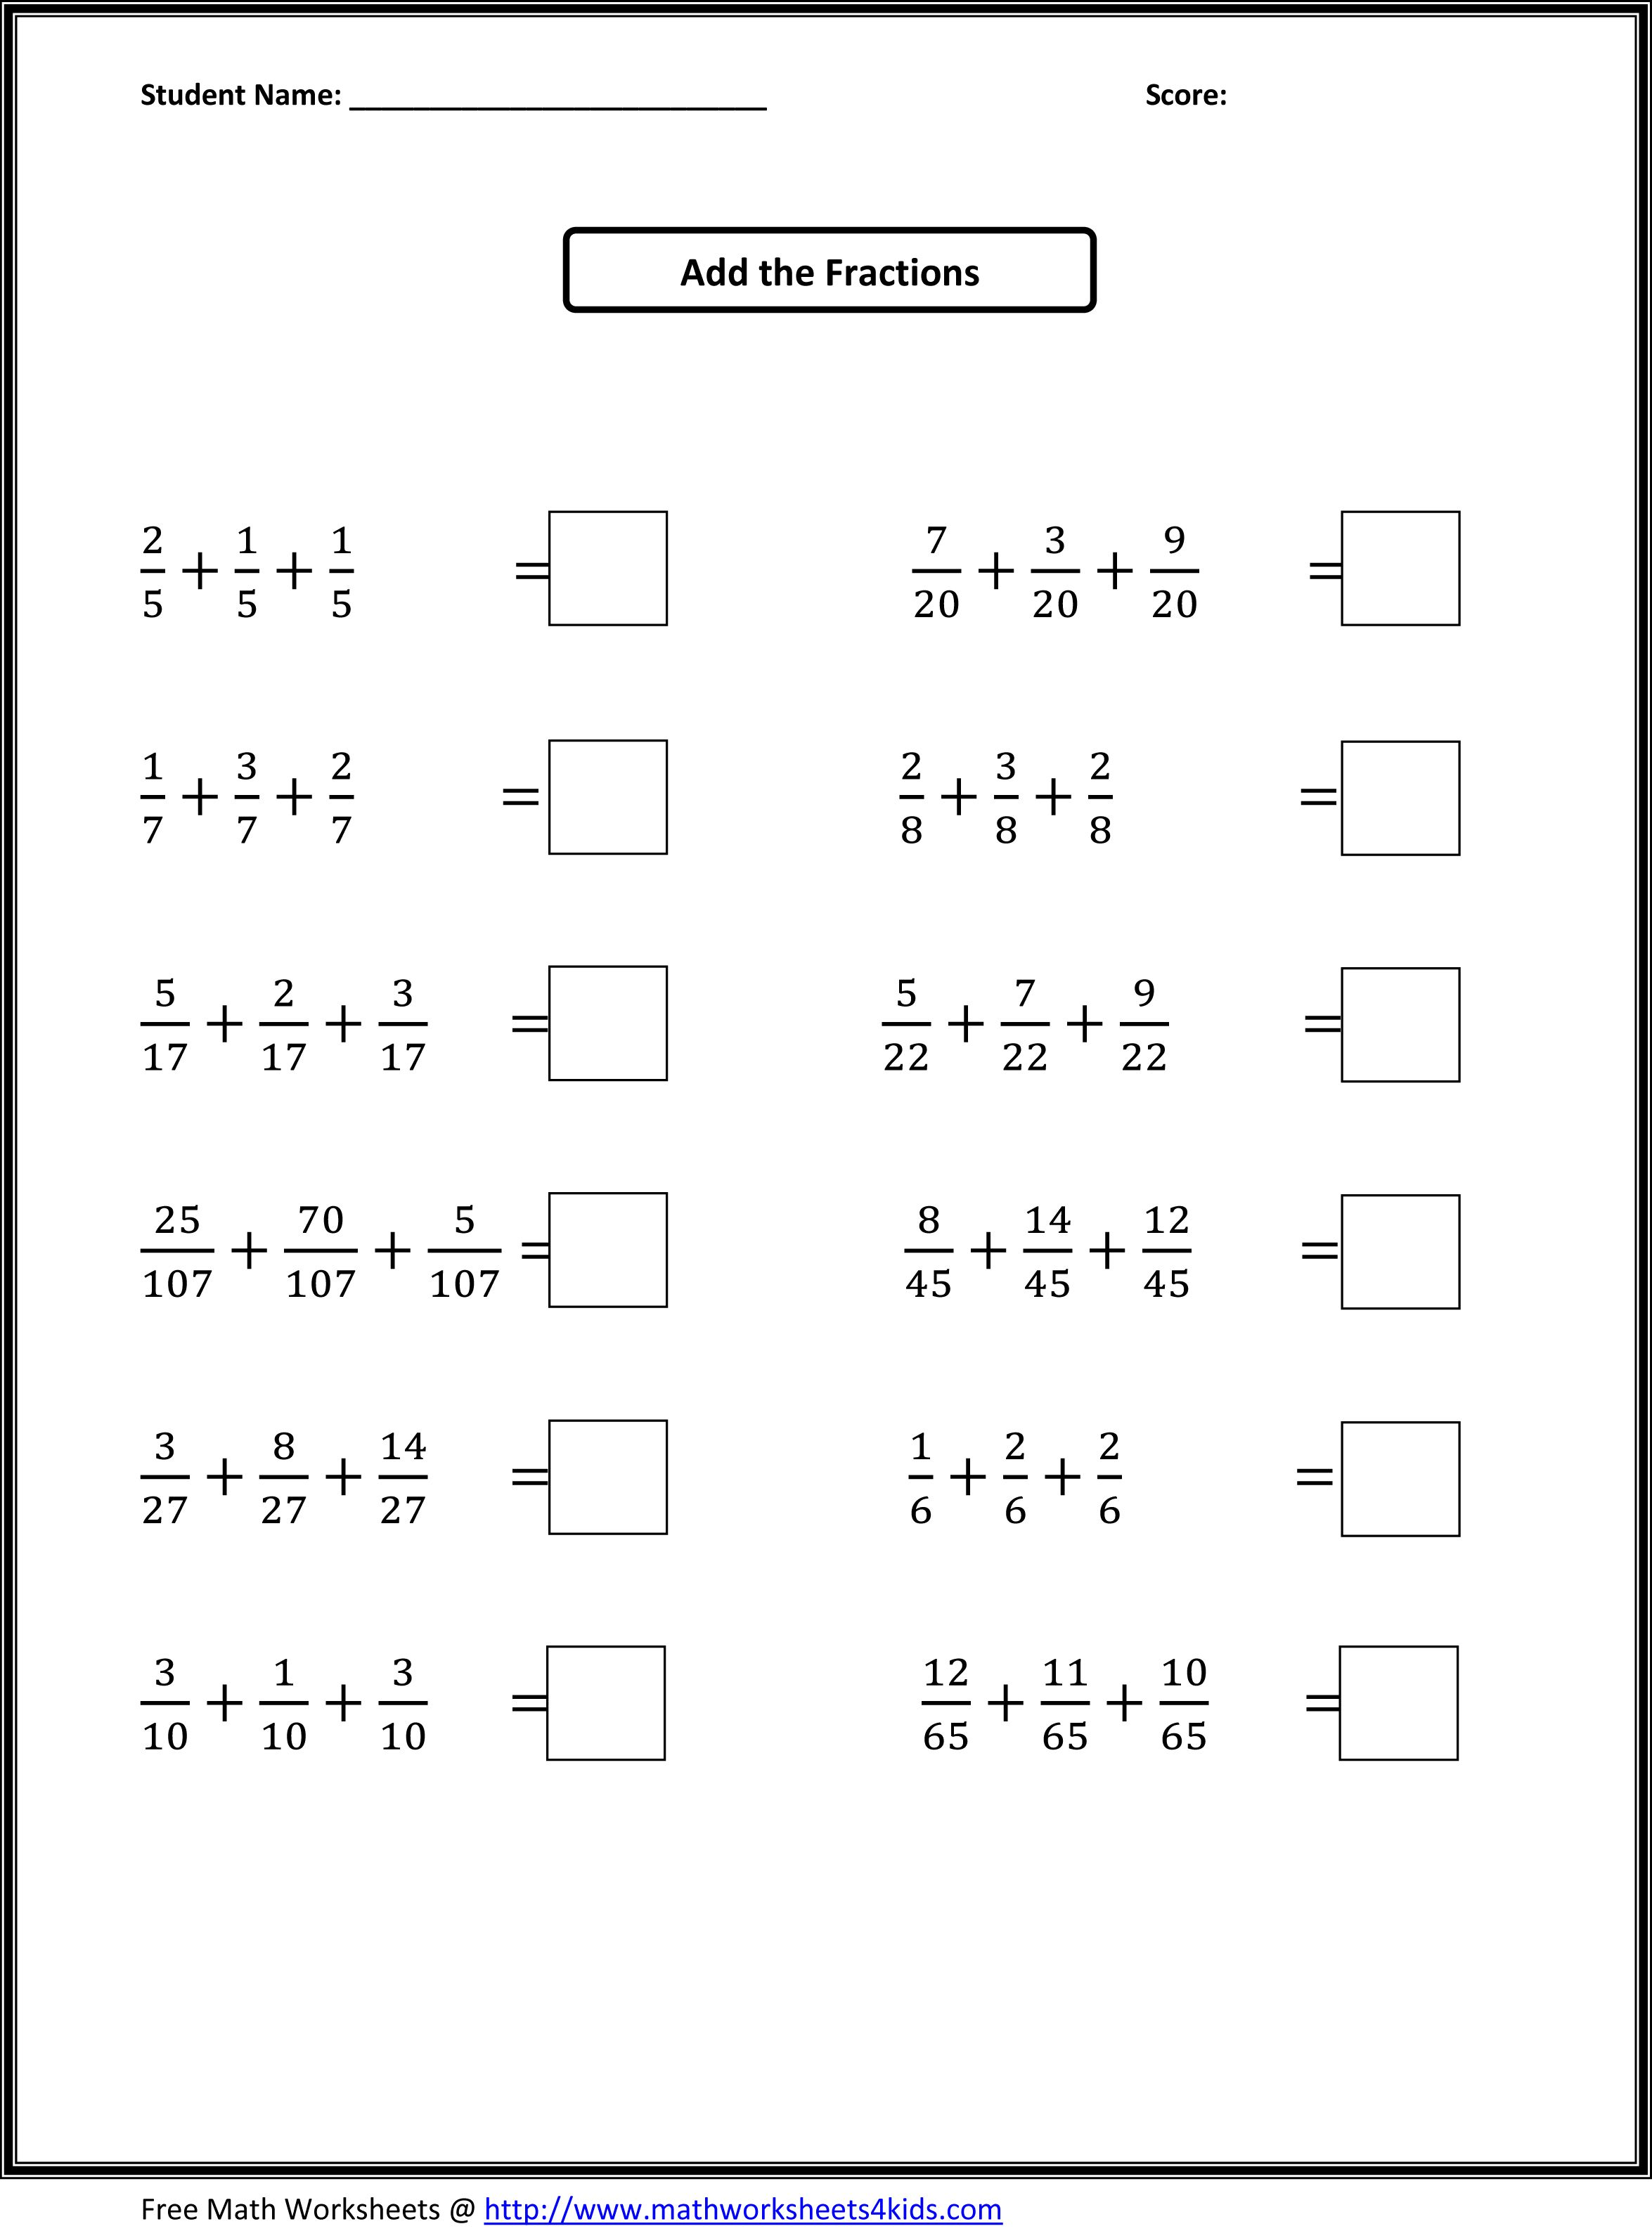 Worksheets 4th Grade Math Worksheets To Print worksheets for all early ed grades topics of math high quality equivalent fractions grade photos